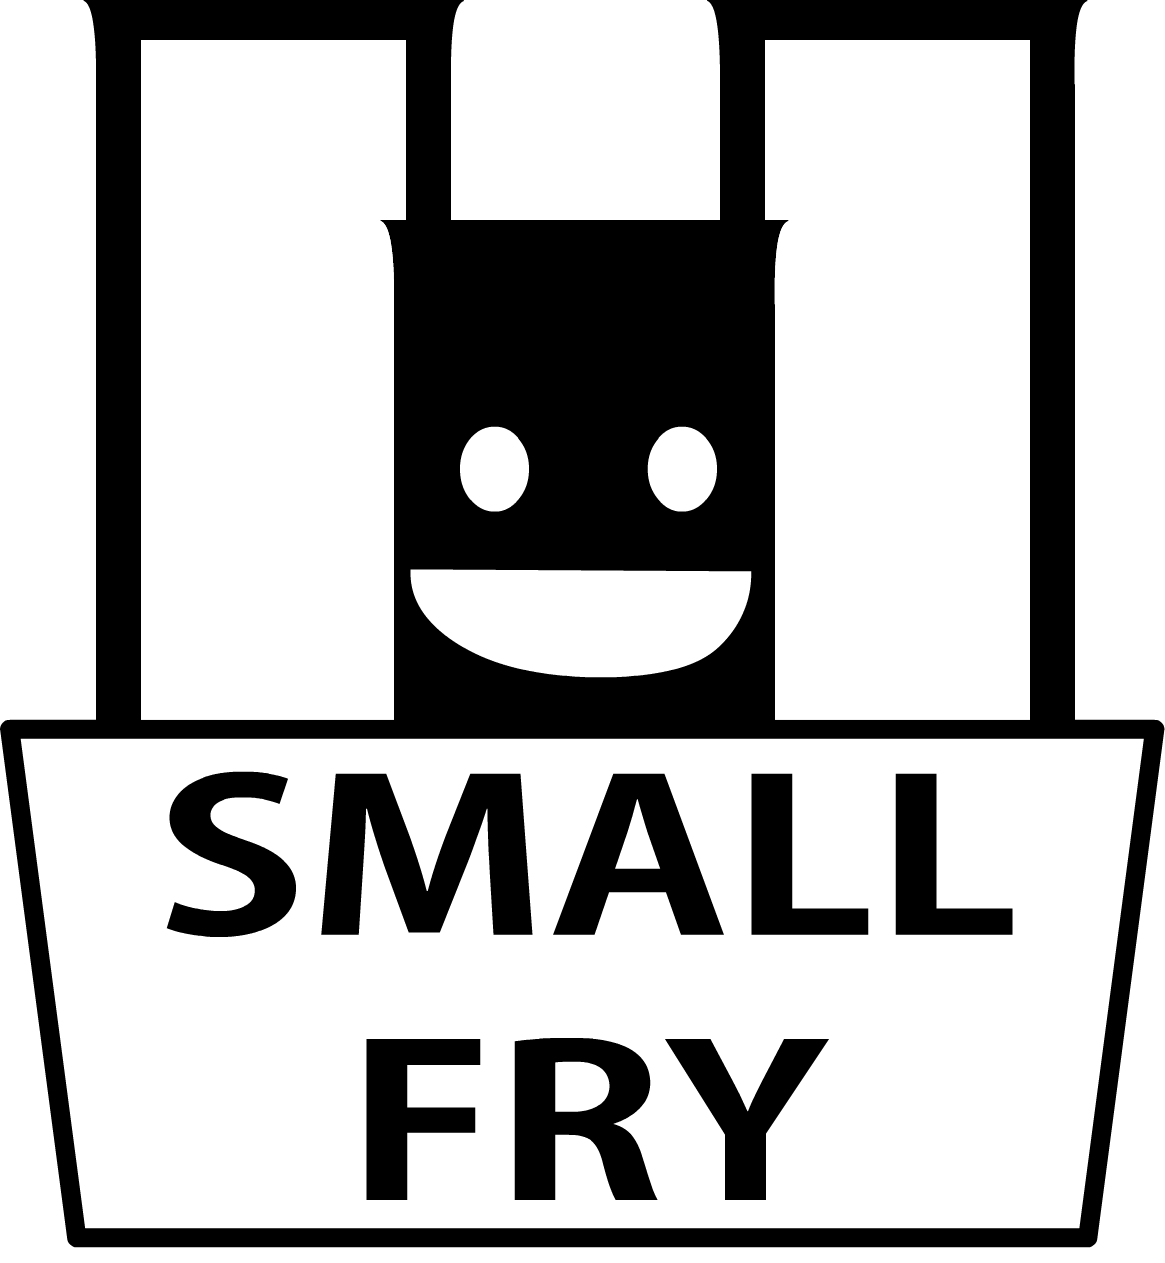 Small Fry Publishing. - Independent words and doodles.